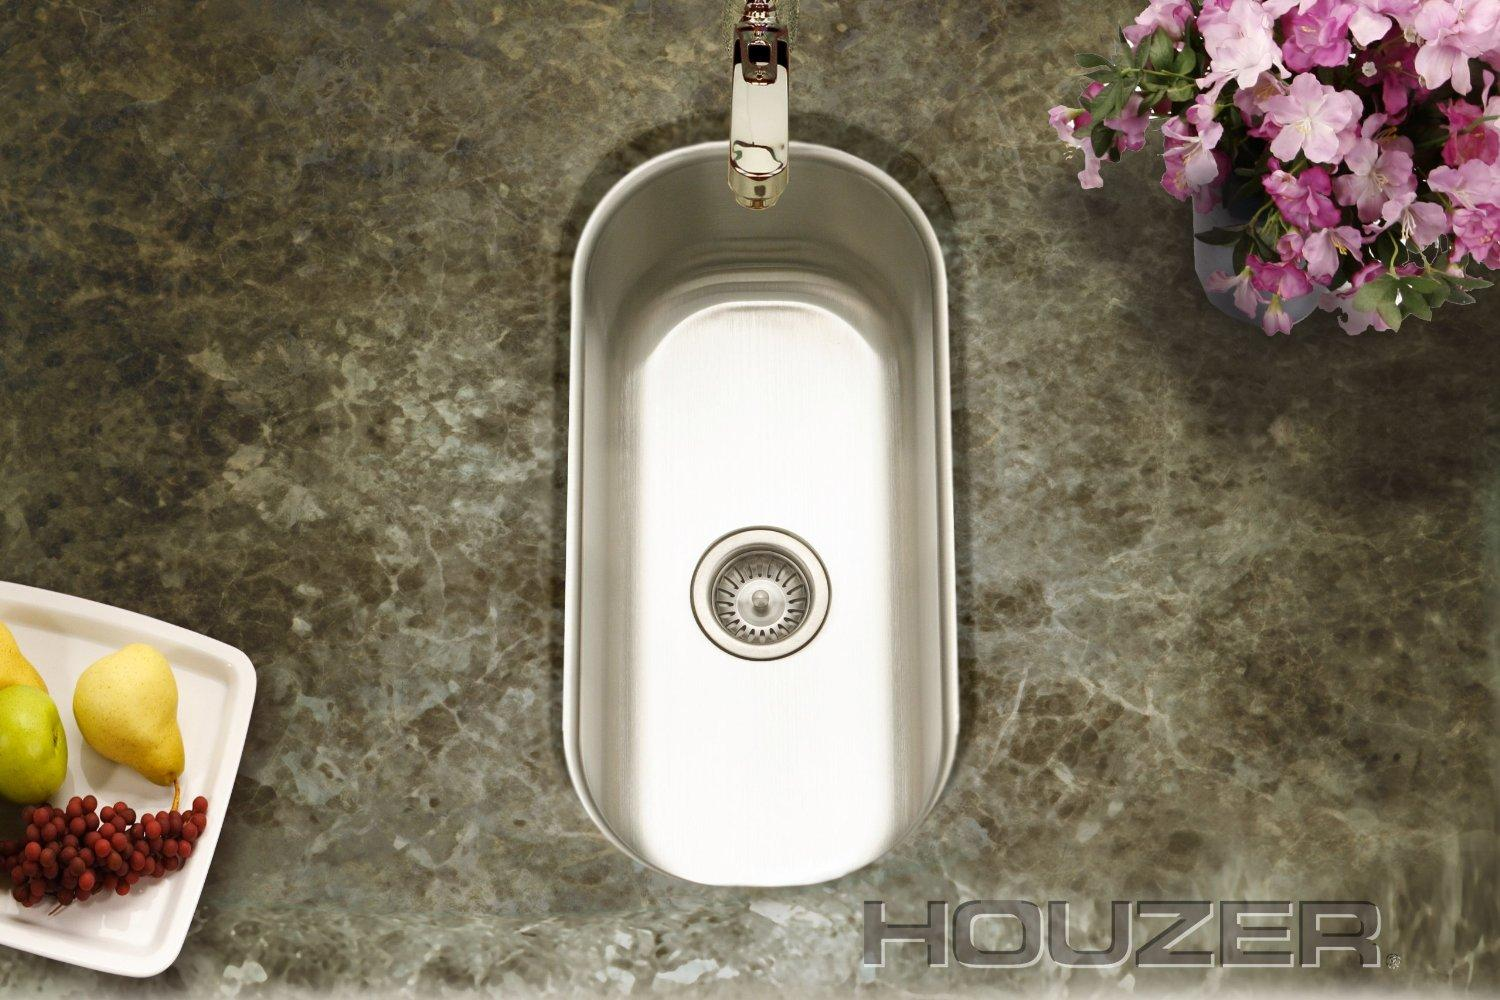 about houzer houzer sinks complement your home and your lifestyle look ...